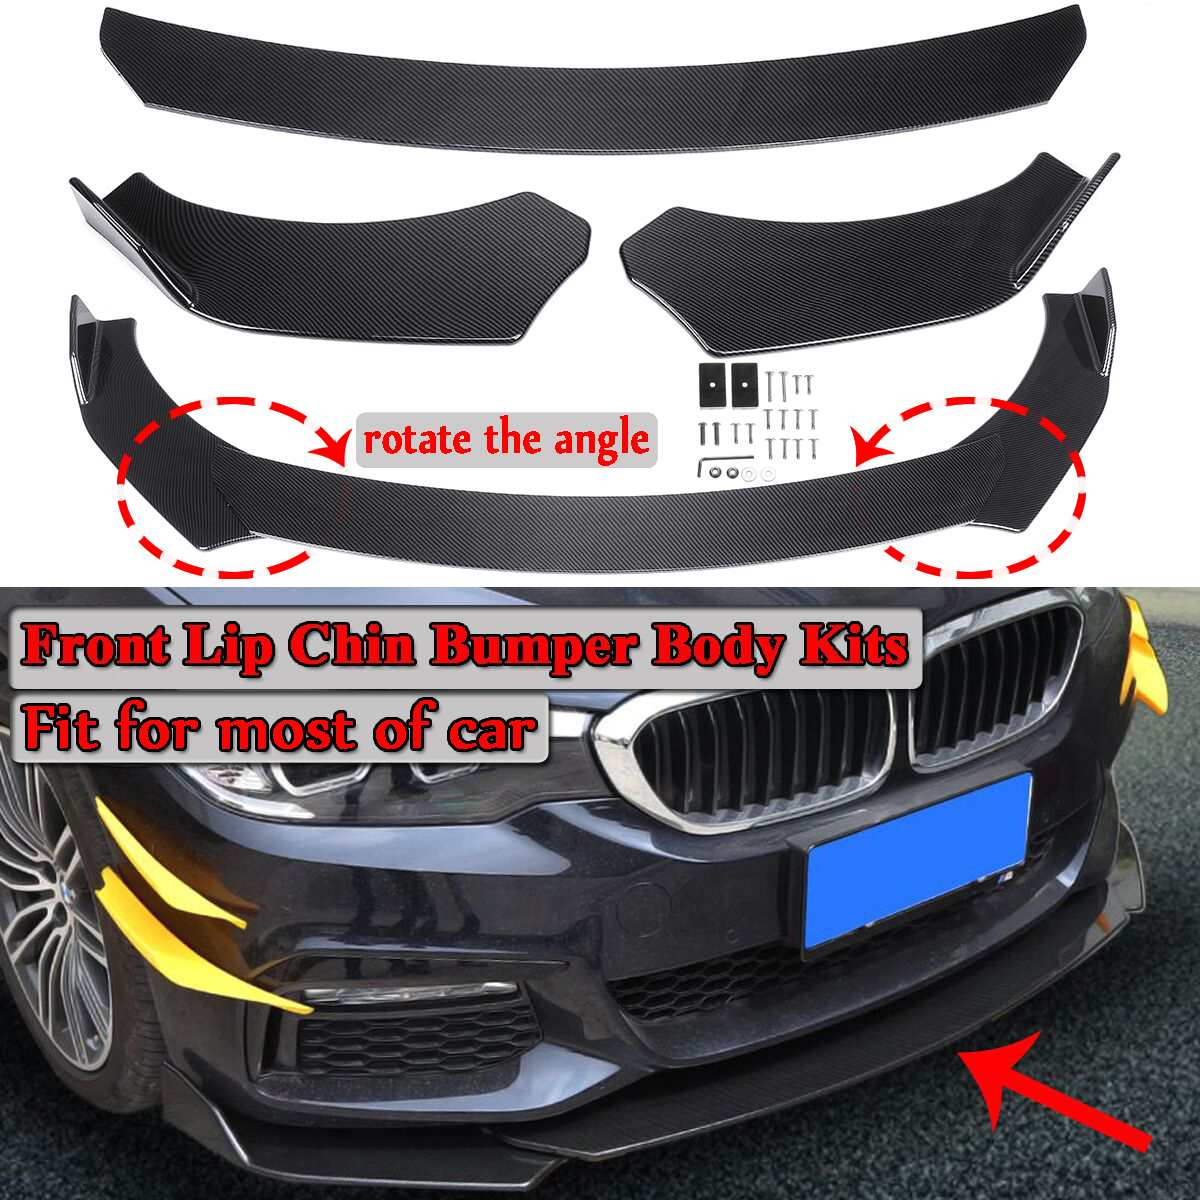 Carbon Fiber Look Black Universal 3Pieces Car Front Lip Chin Bumper Body Kits Rotate The Angle